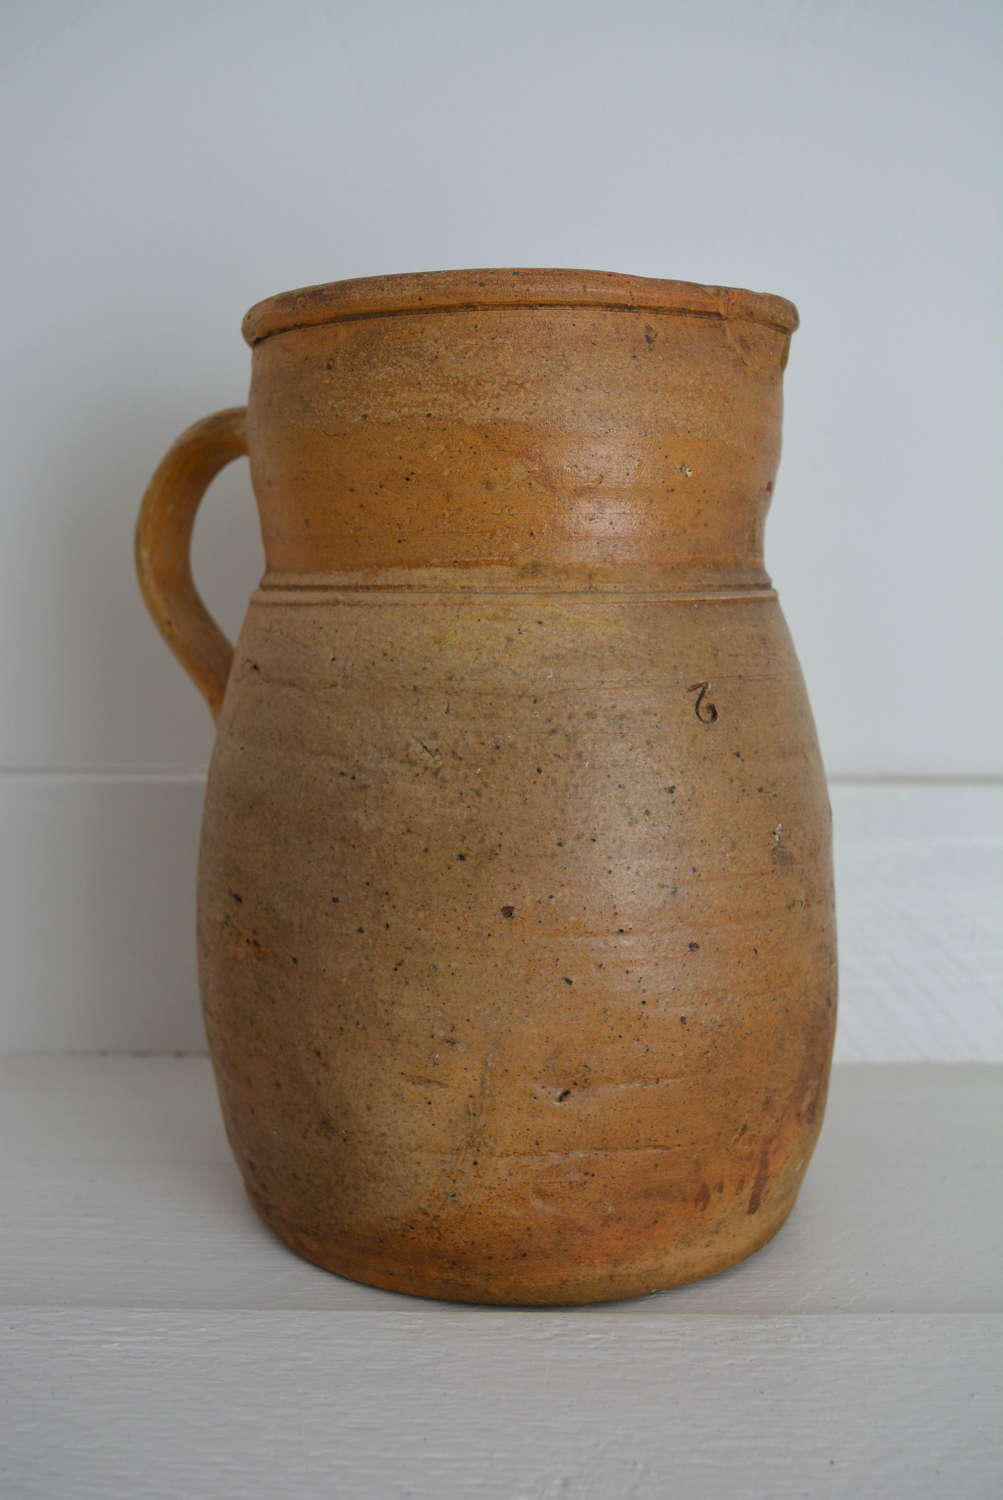 19TH CENTURY FRENCH STONEWARE JUG